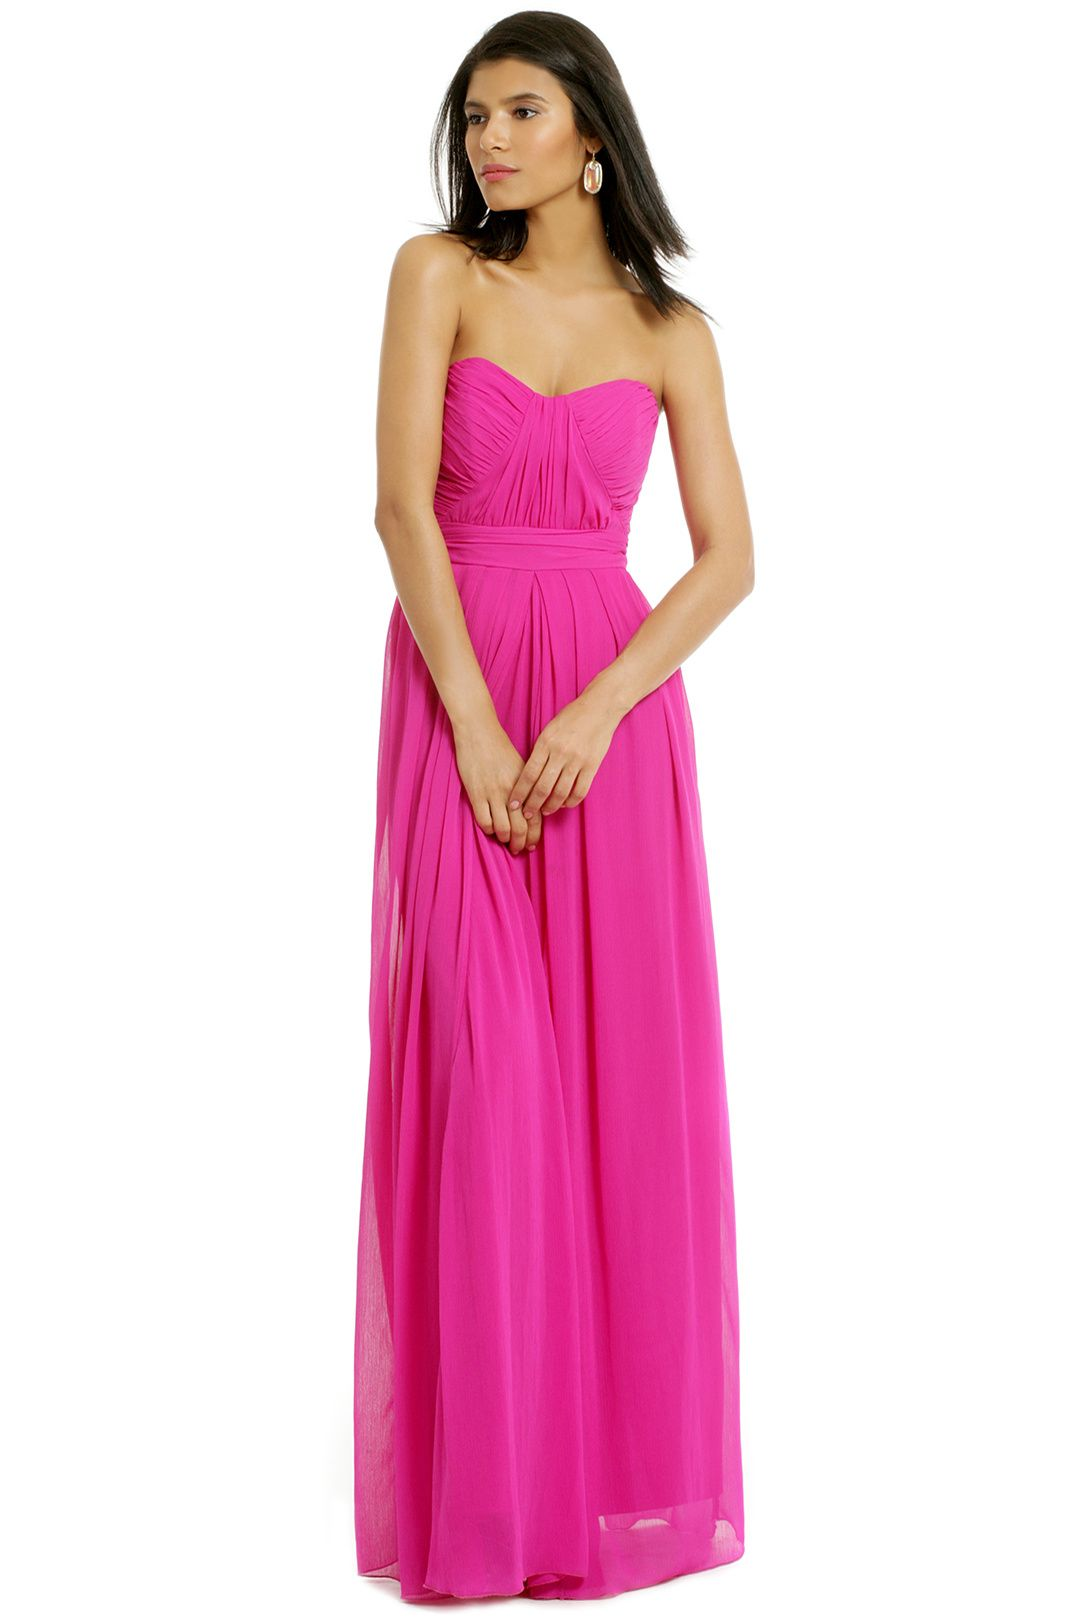 Badgley Mischka Fluorescent Chiffon Gown | Dresses | Pinterest